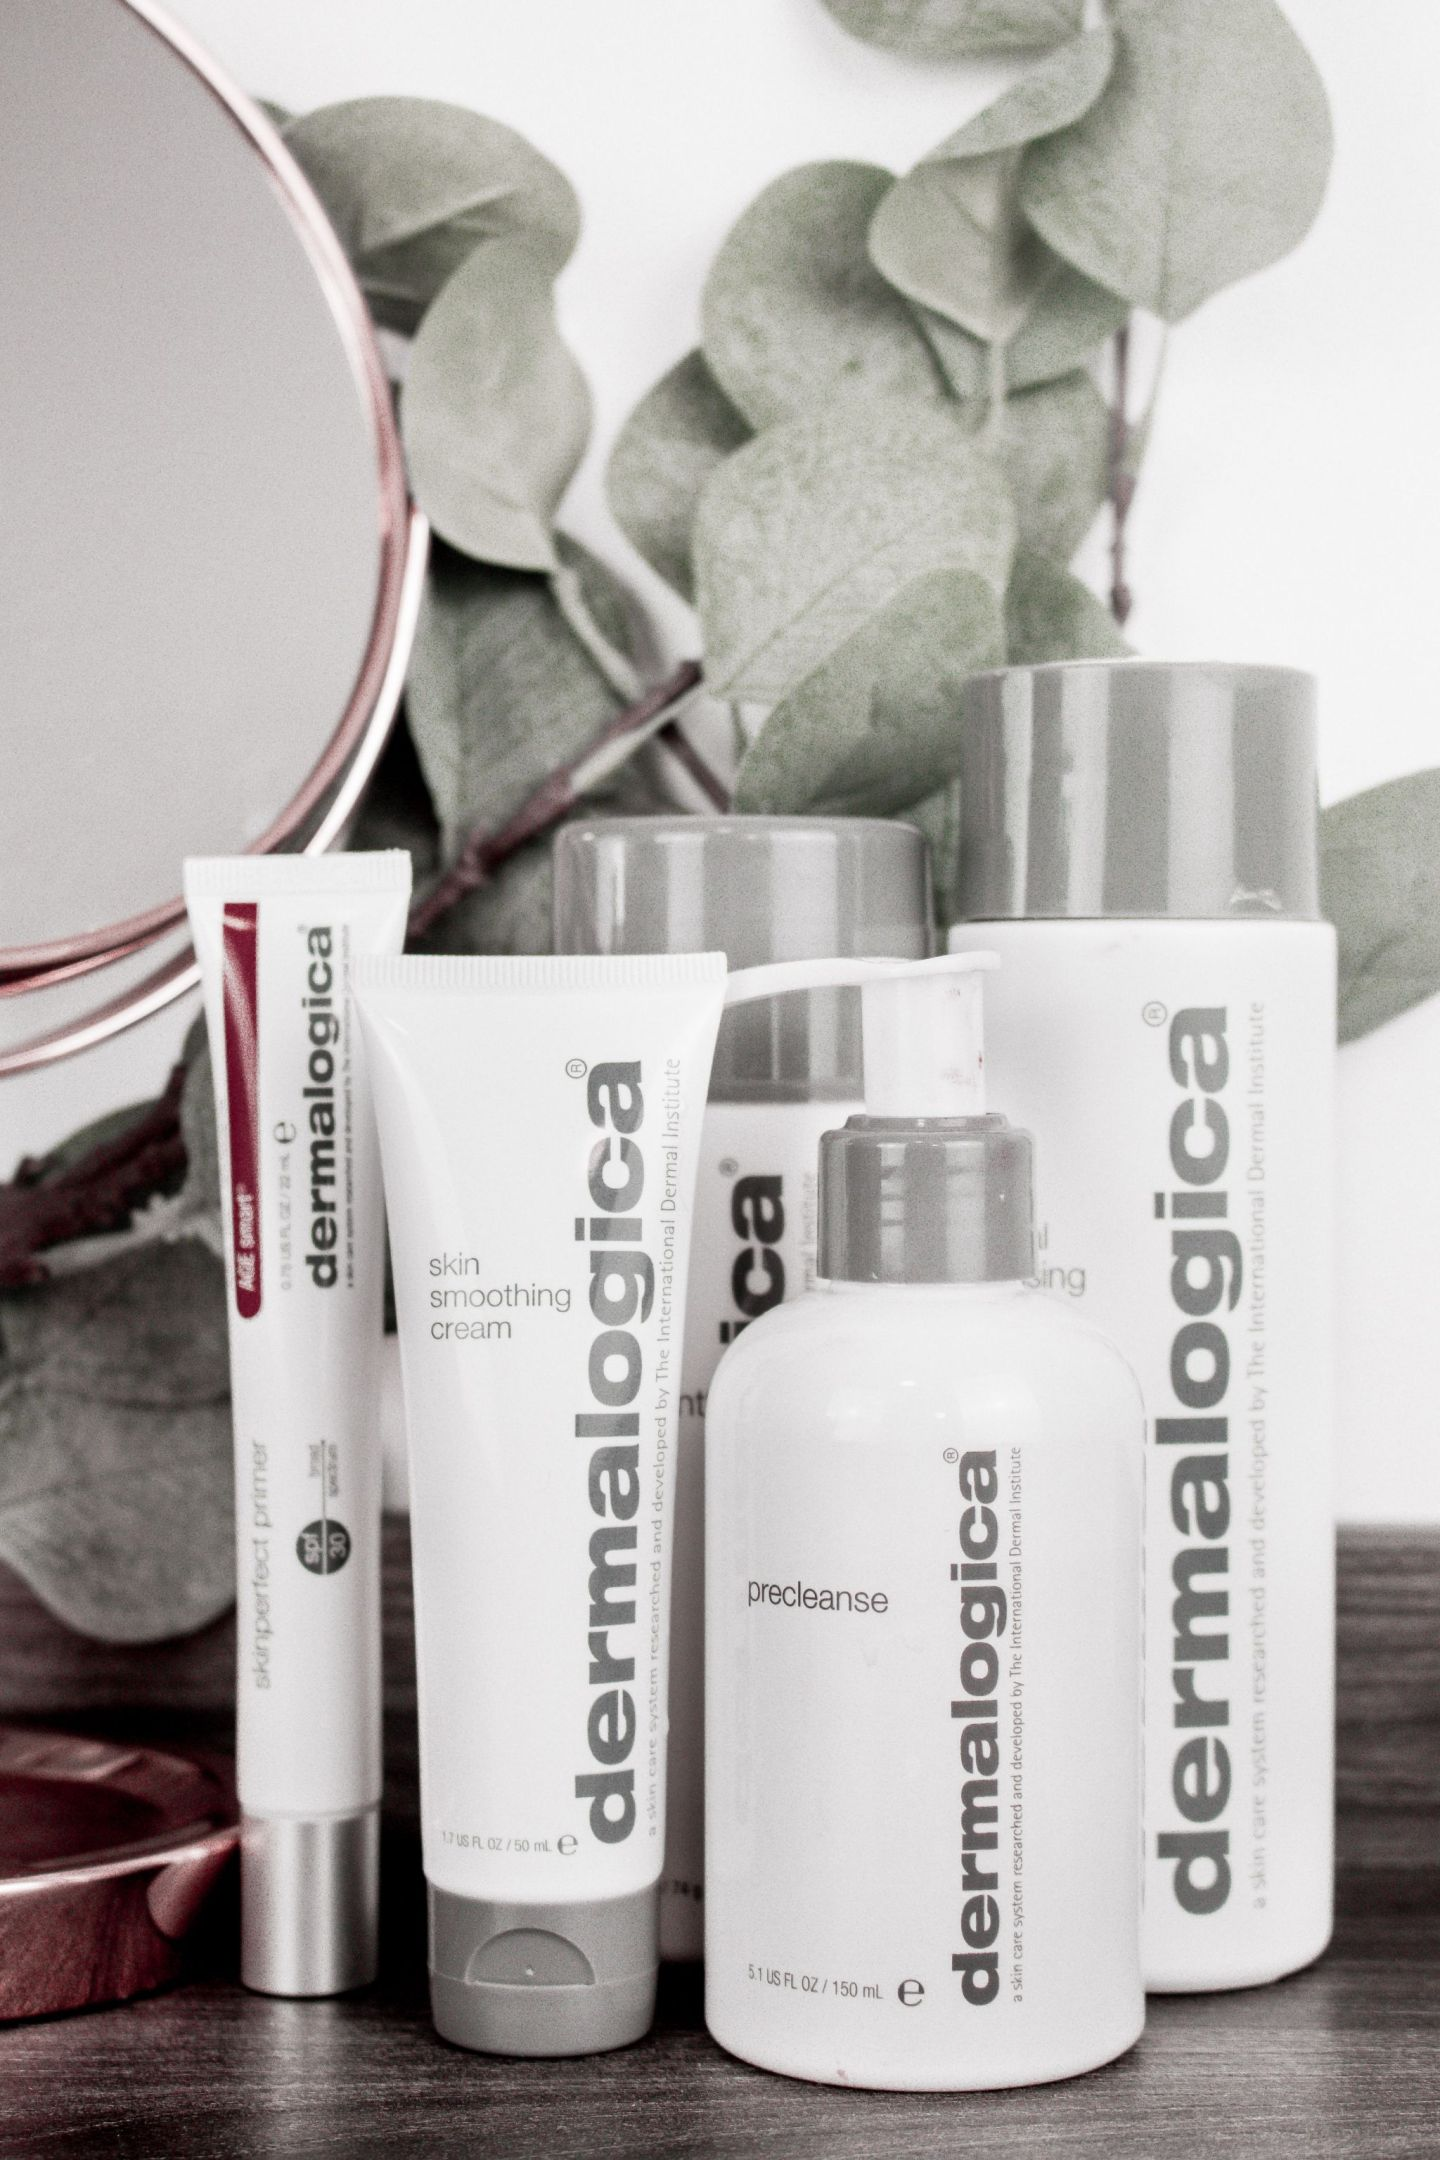 Dermalogica Skincare Routine PreCleanse, Special Cleansing Gel, Daily Microfoliant, Skin Smoothing Cream, SkinPerfect Primer